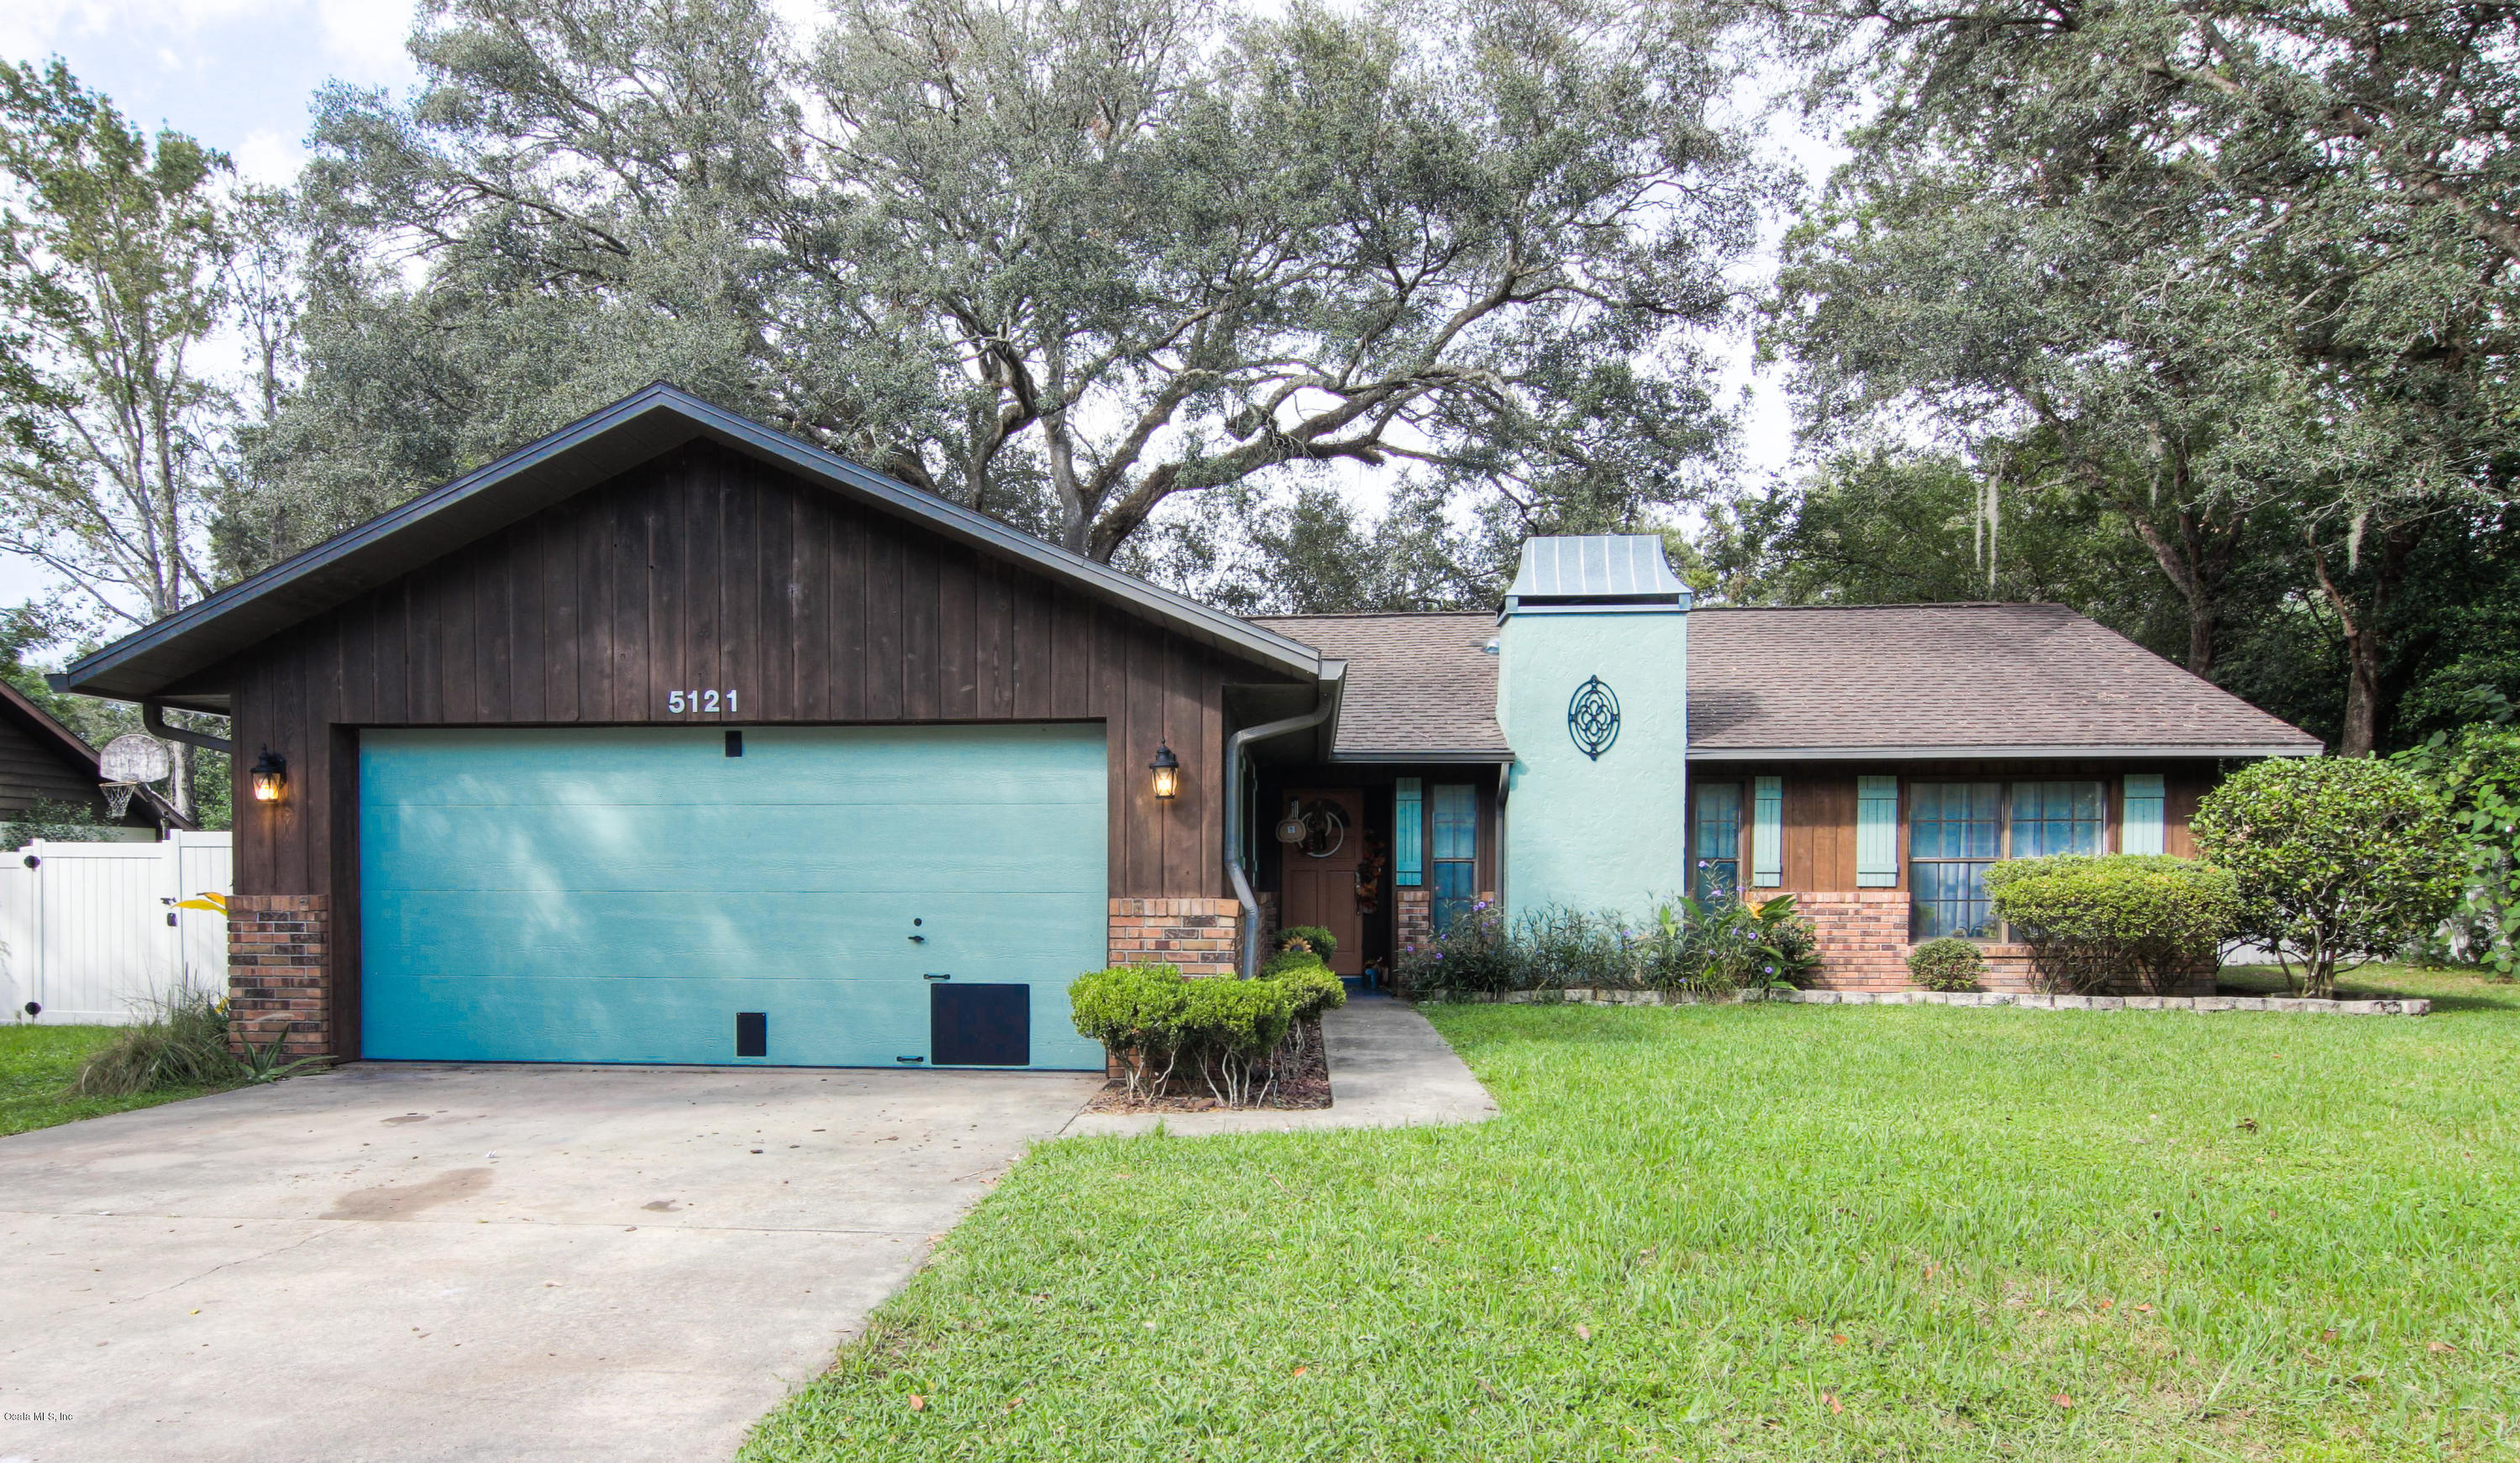 5121 NE 4TH STREET, OCALA, FL 34470